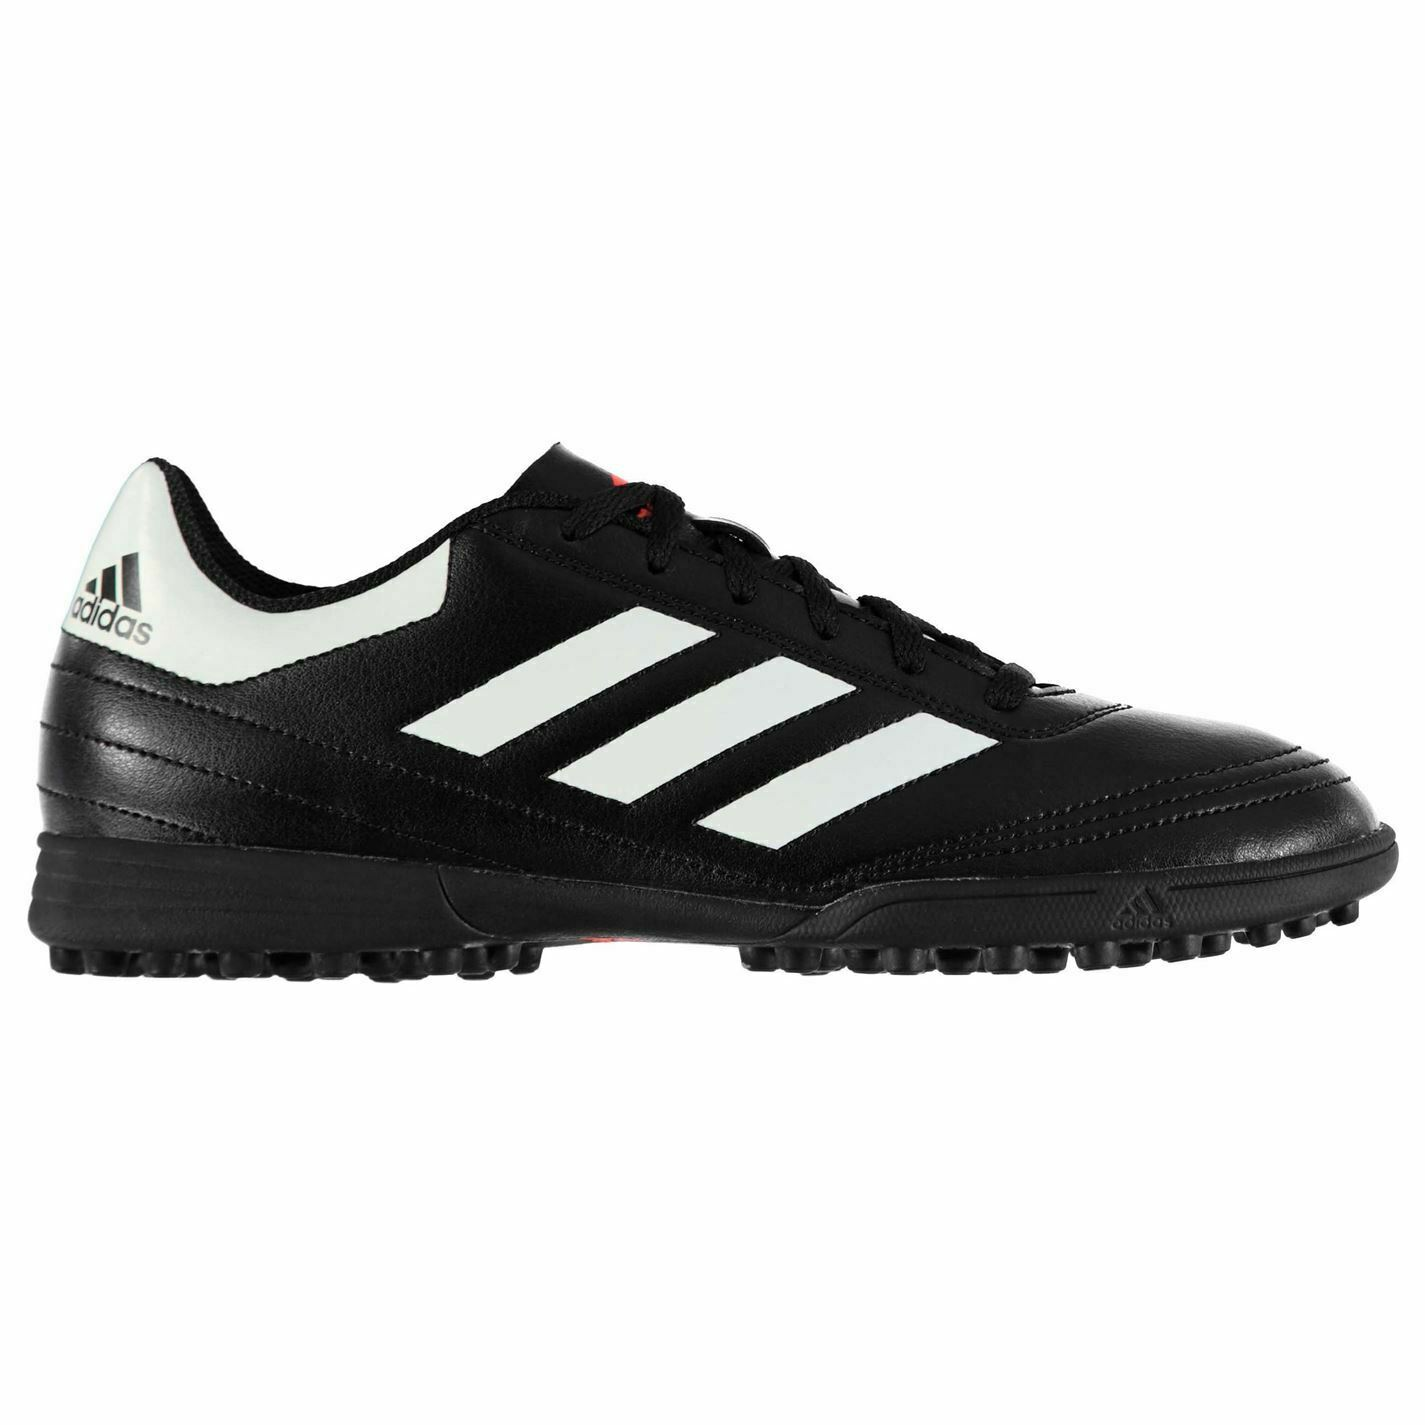 Adidas Goletto AG Artificial Grass Trainers Mens Blk Wht Football Soccer shoes